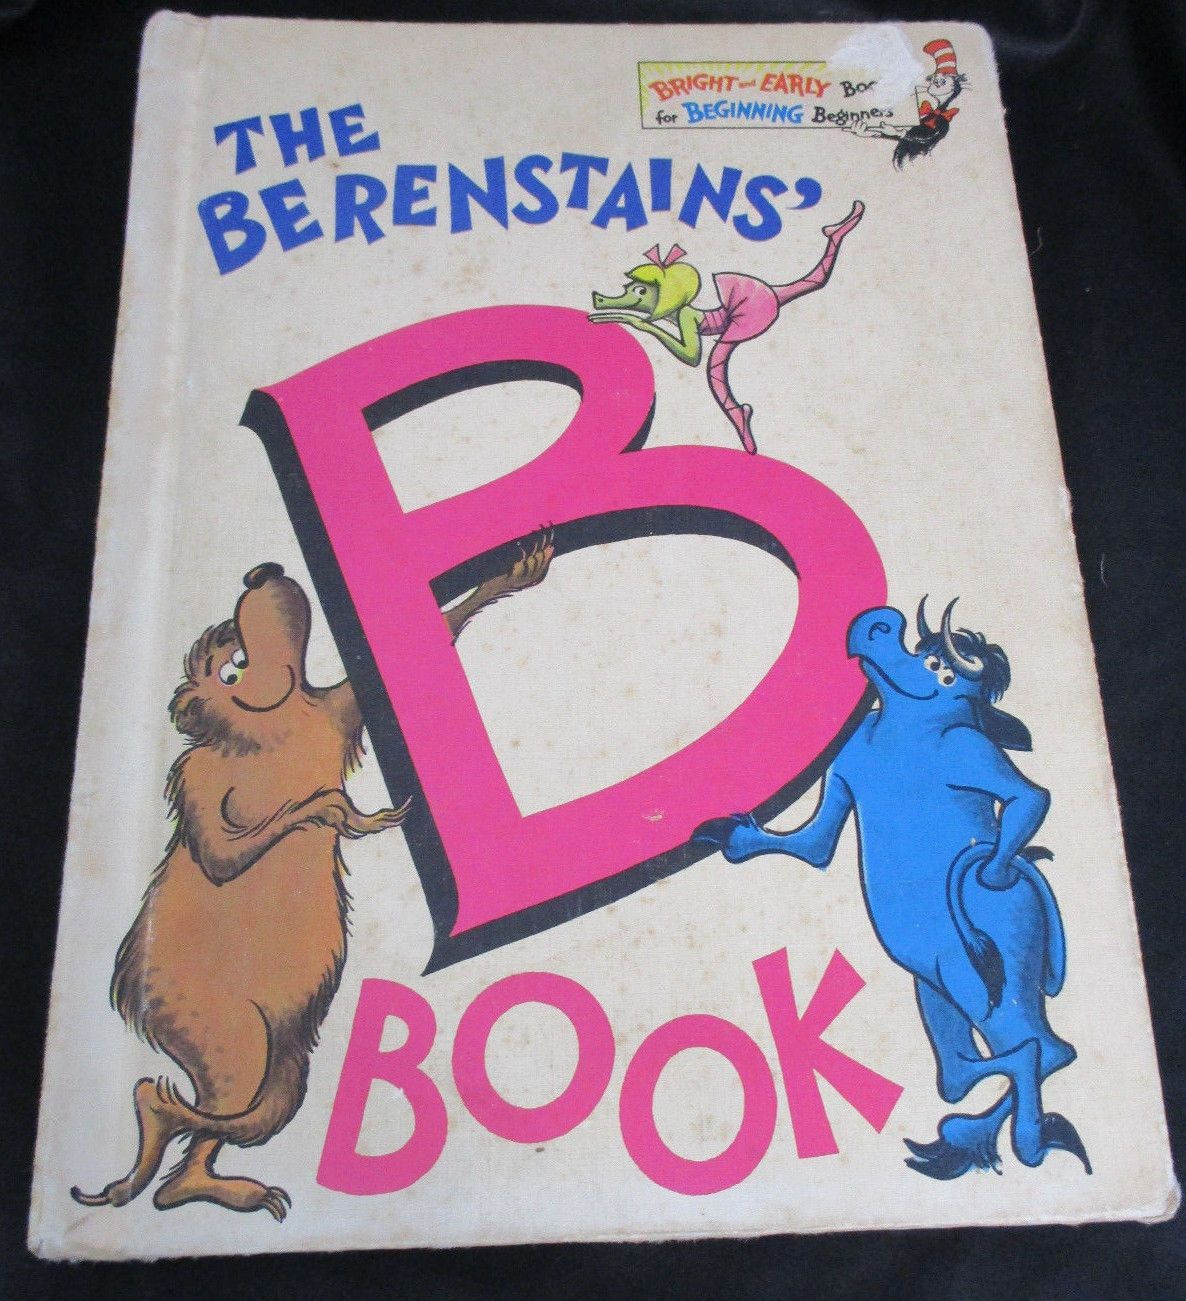 Berenstain Bears Bright And Early Bks The Berenstains B